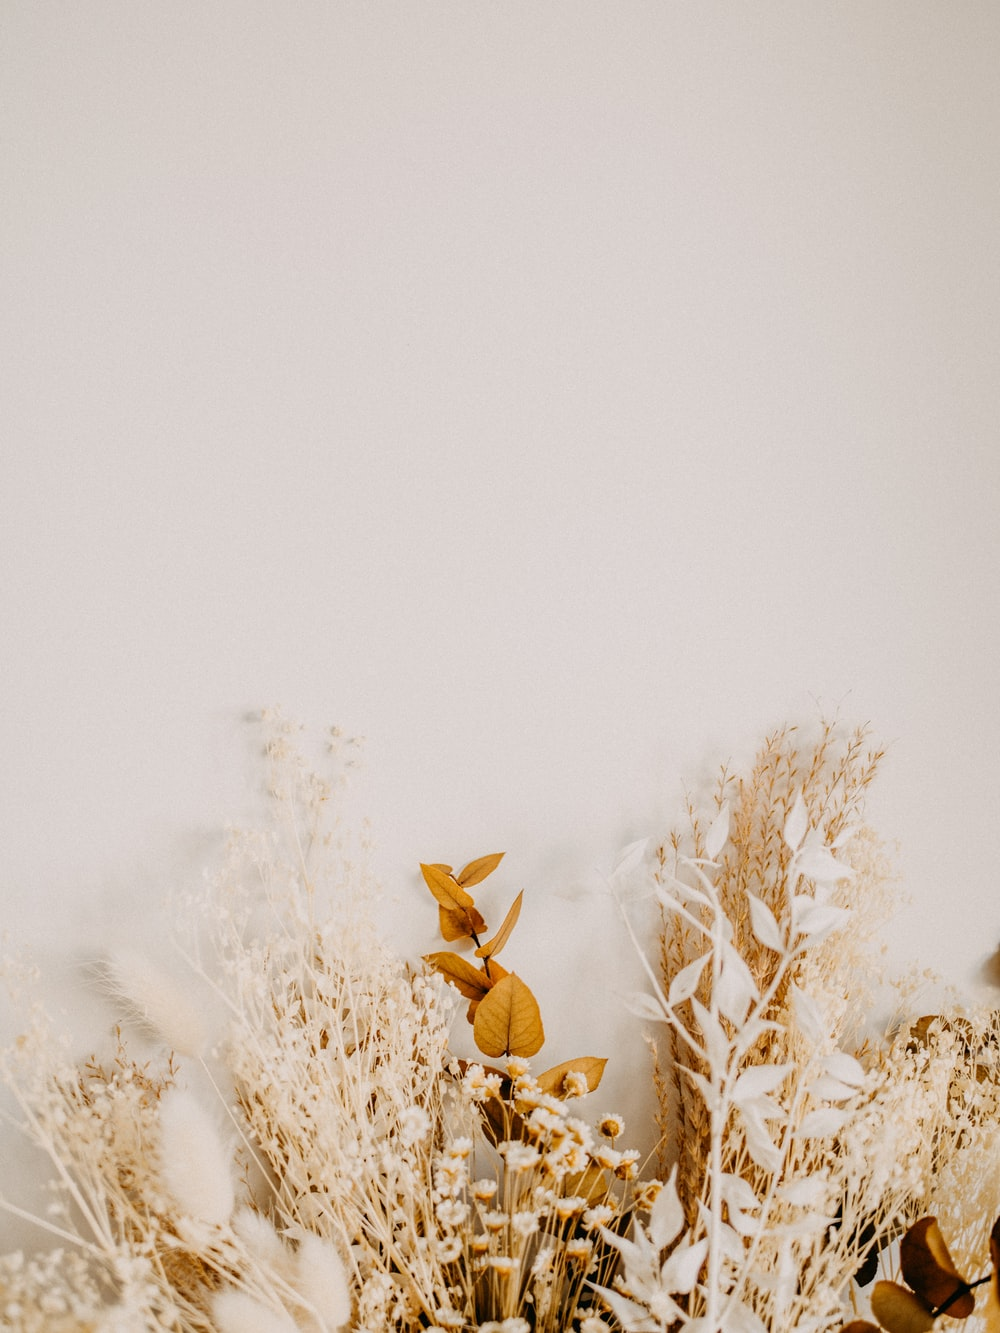 brown dried plant on snow covered ground